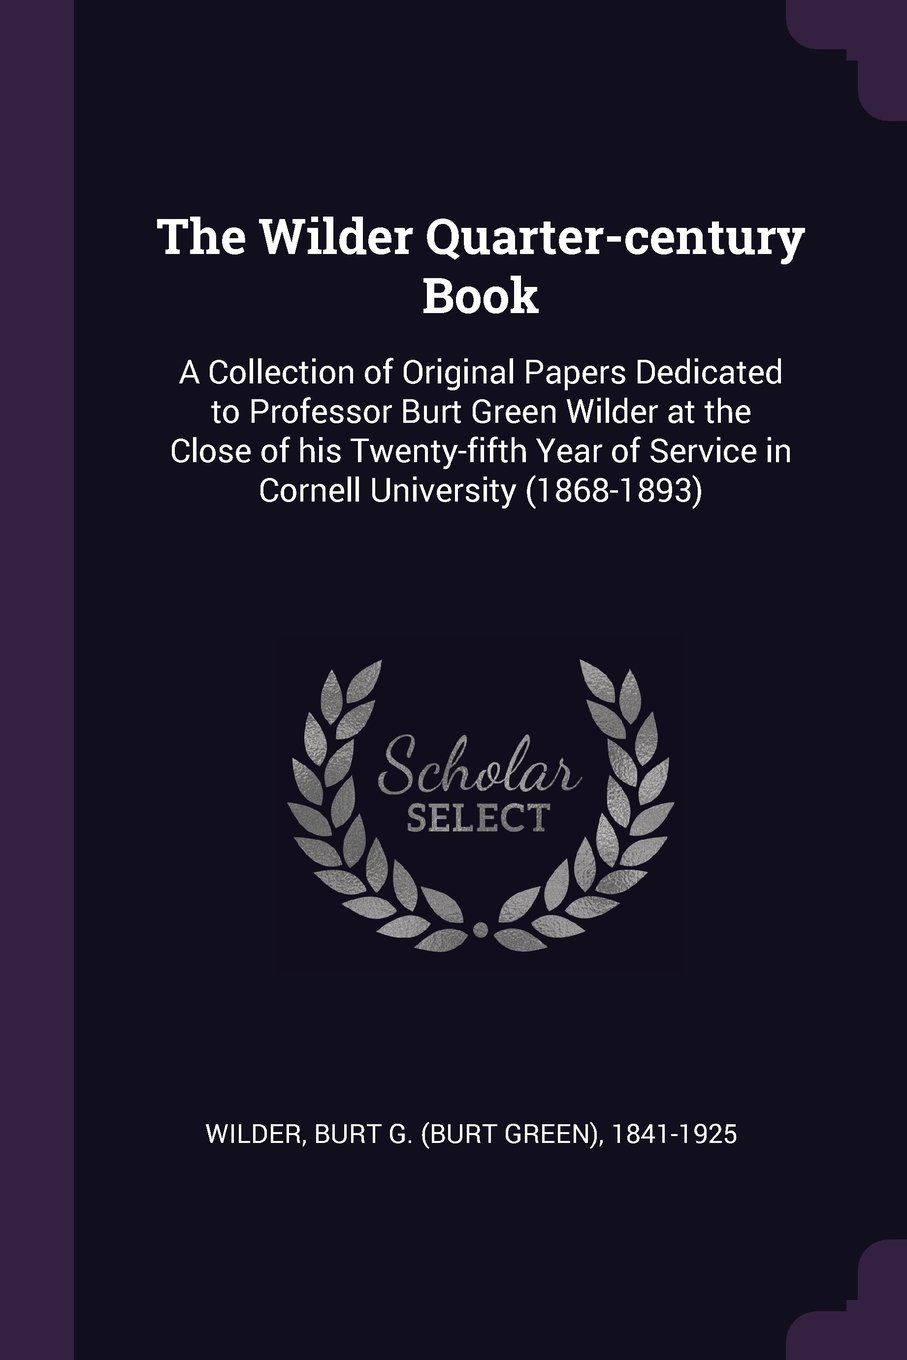 Download The Wilder Quarter-century Book: A Collection of Original Papers Dedicated to Professor Burt Green Wilder at the Close of his Twenty-fifth Year of Service in Cornell University (1868-1893) pdf